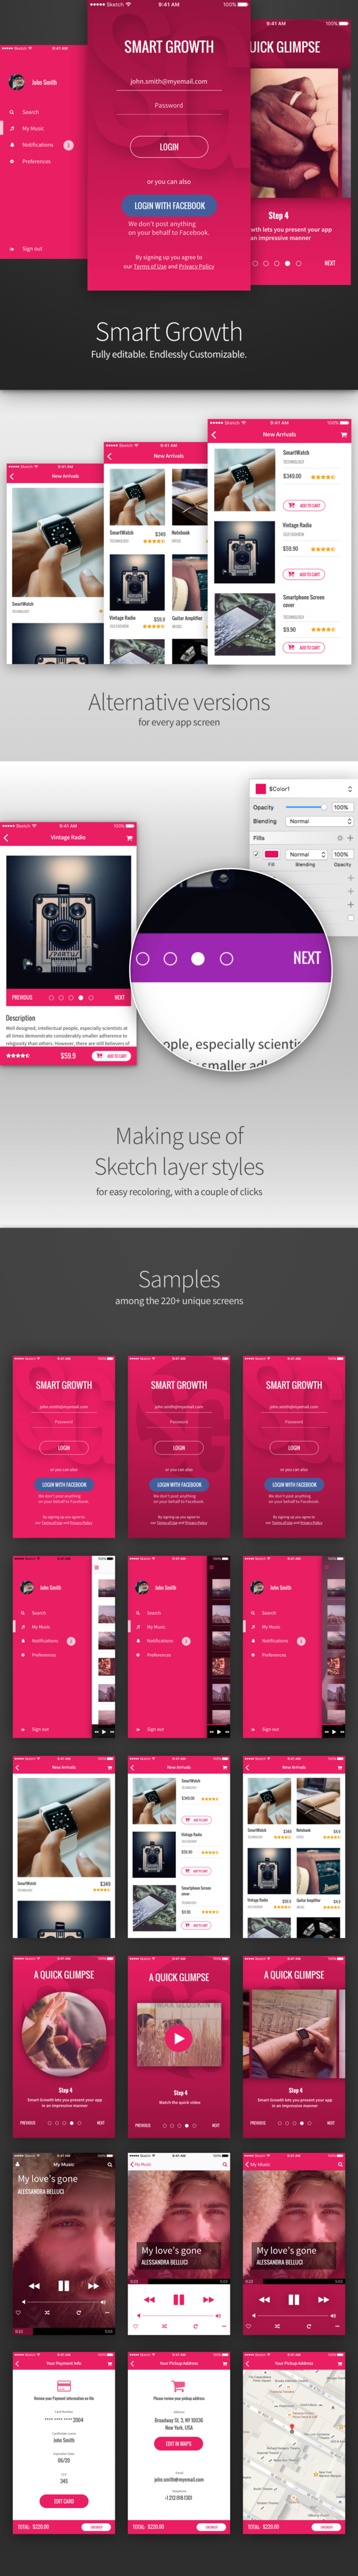 Smart Growth Mobile UI Kit with 220+ screens - Sketch Templates